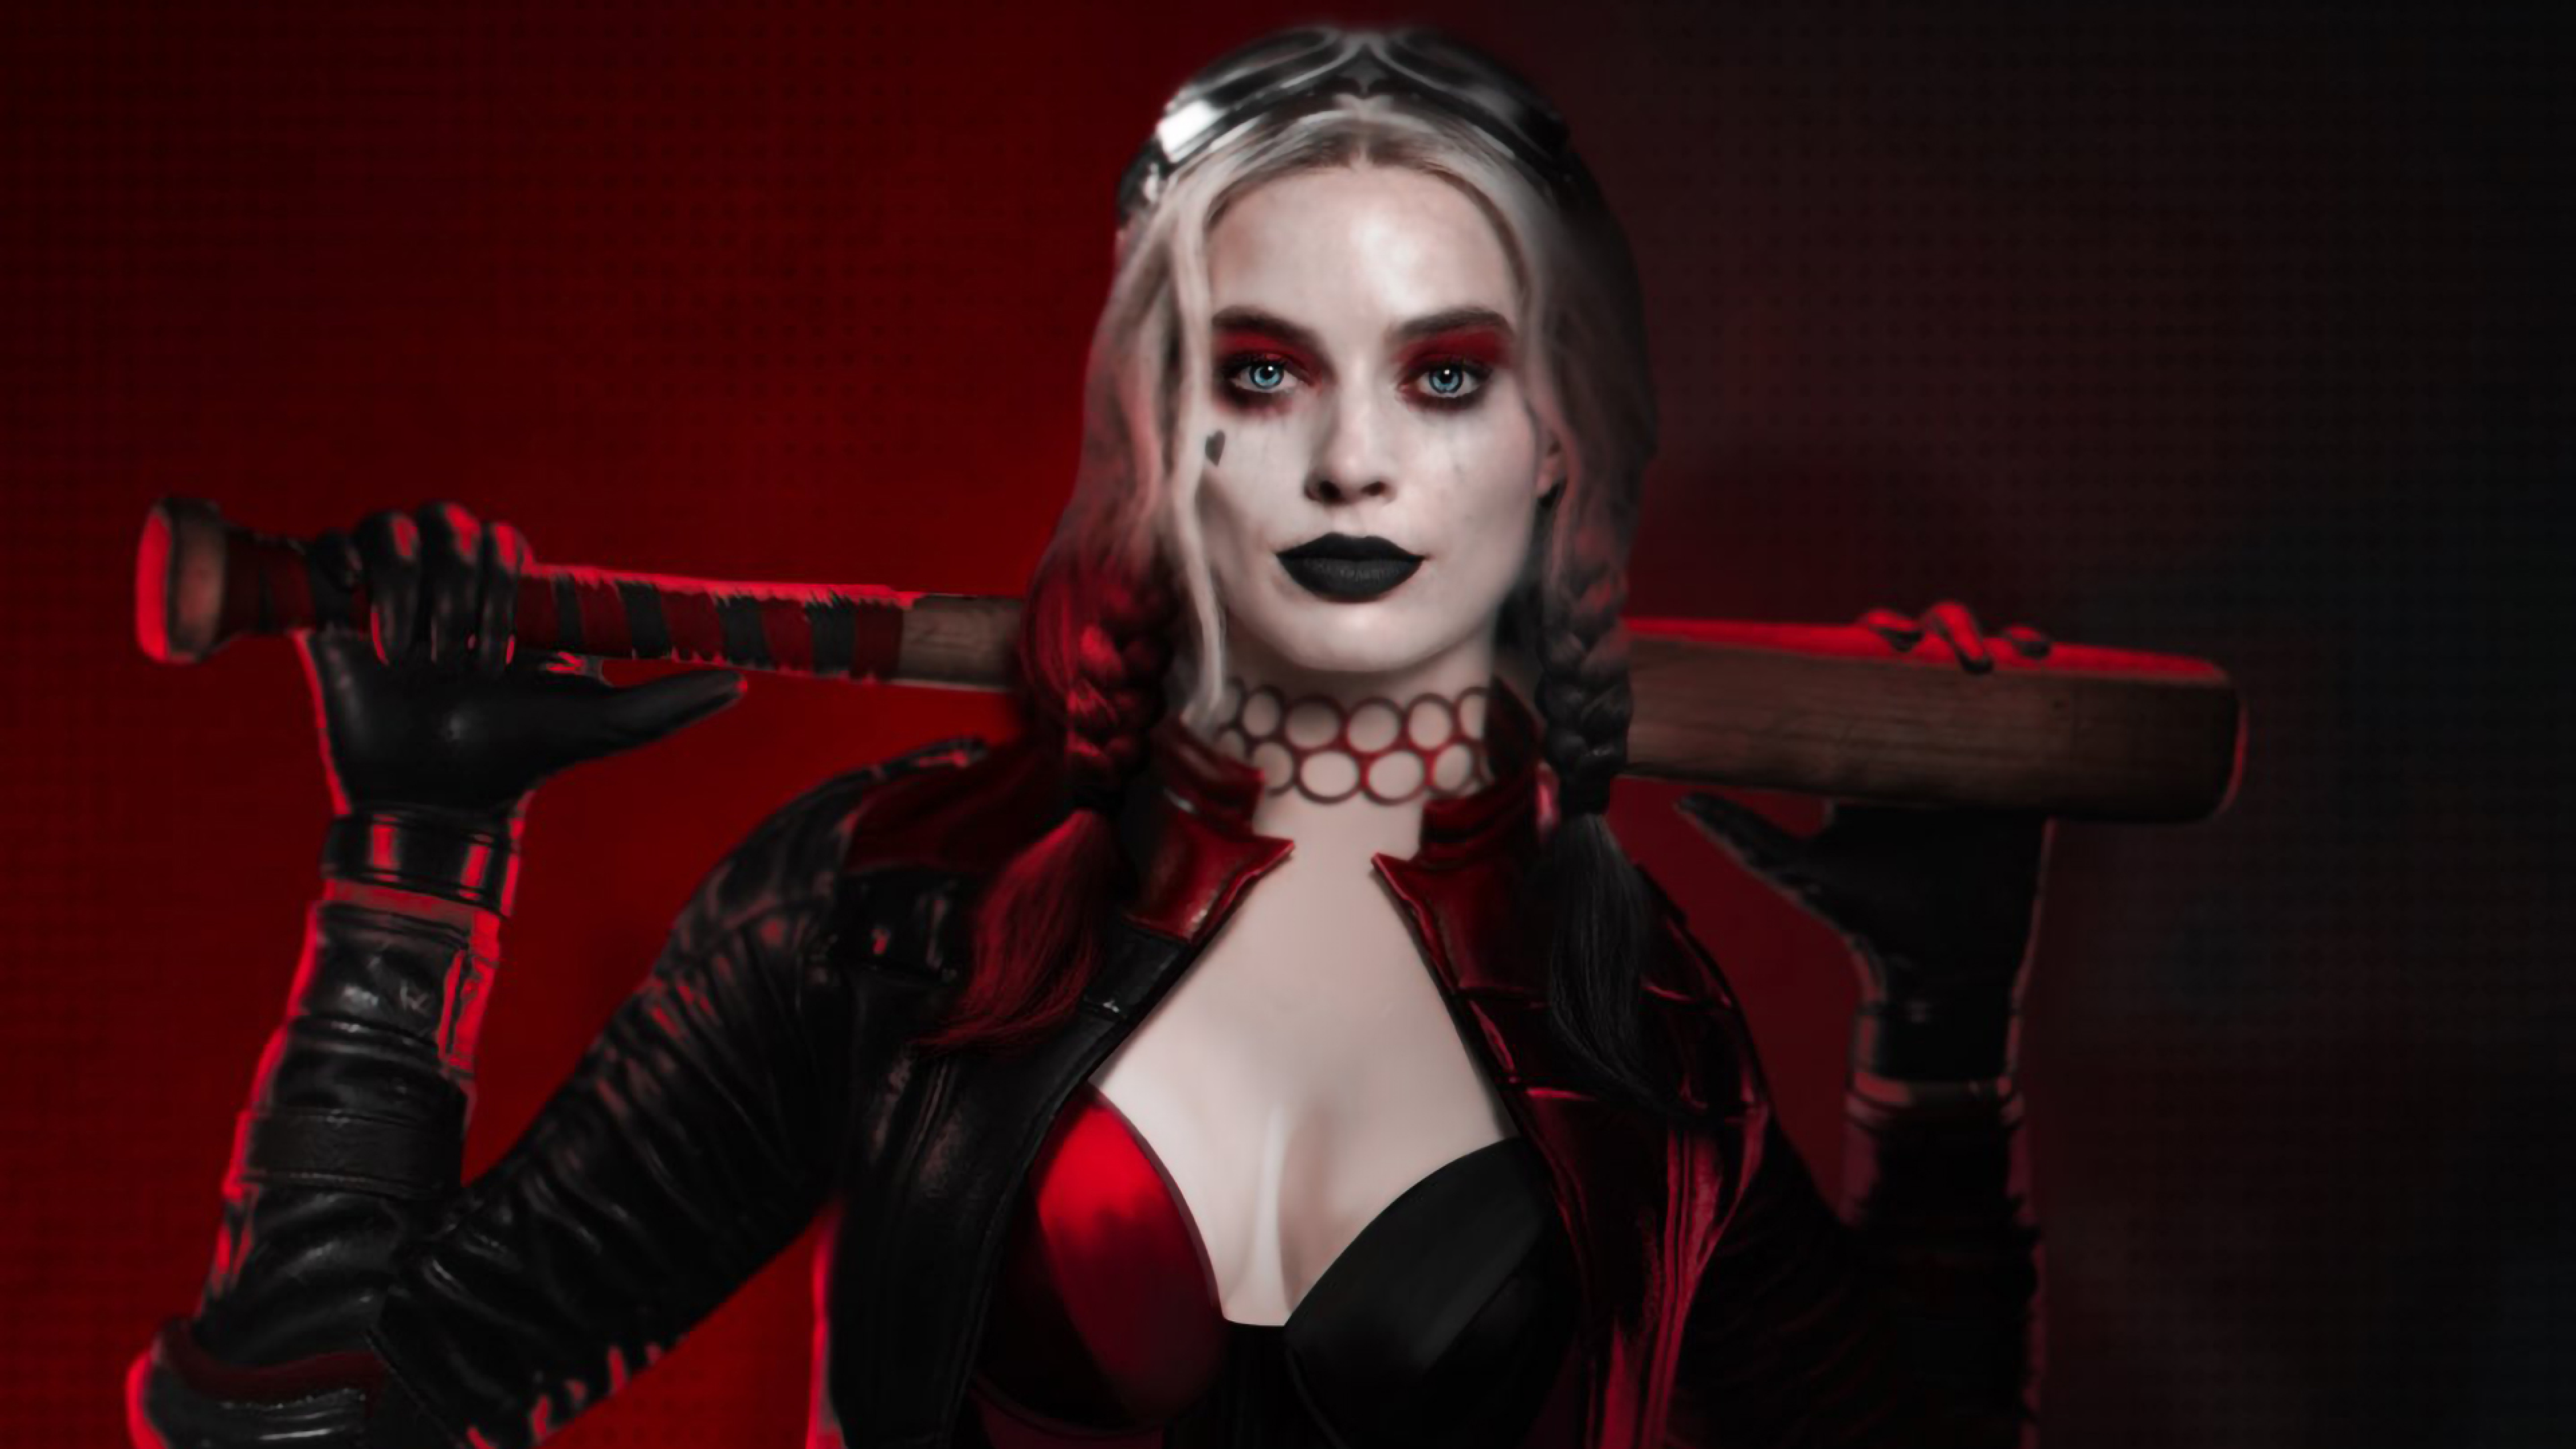 5120x2880 Margot Robbie as Harley Quinn The Suicide Squad ...